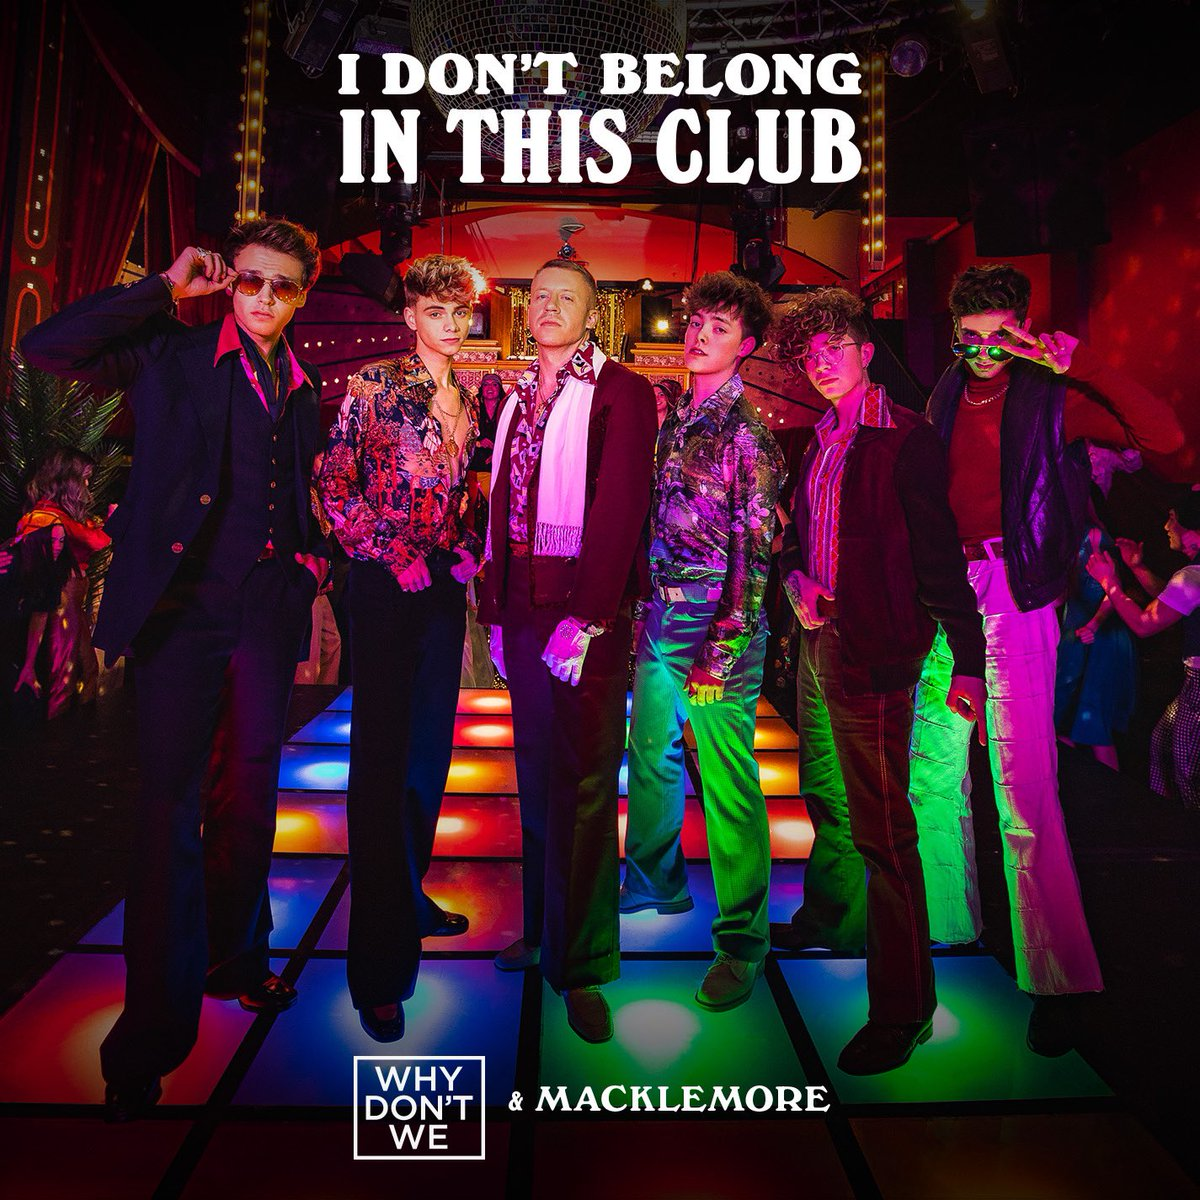 Why Don't We's photo on #IDontBelongInThisClub